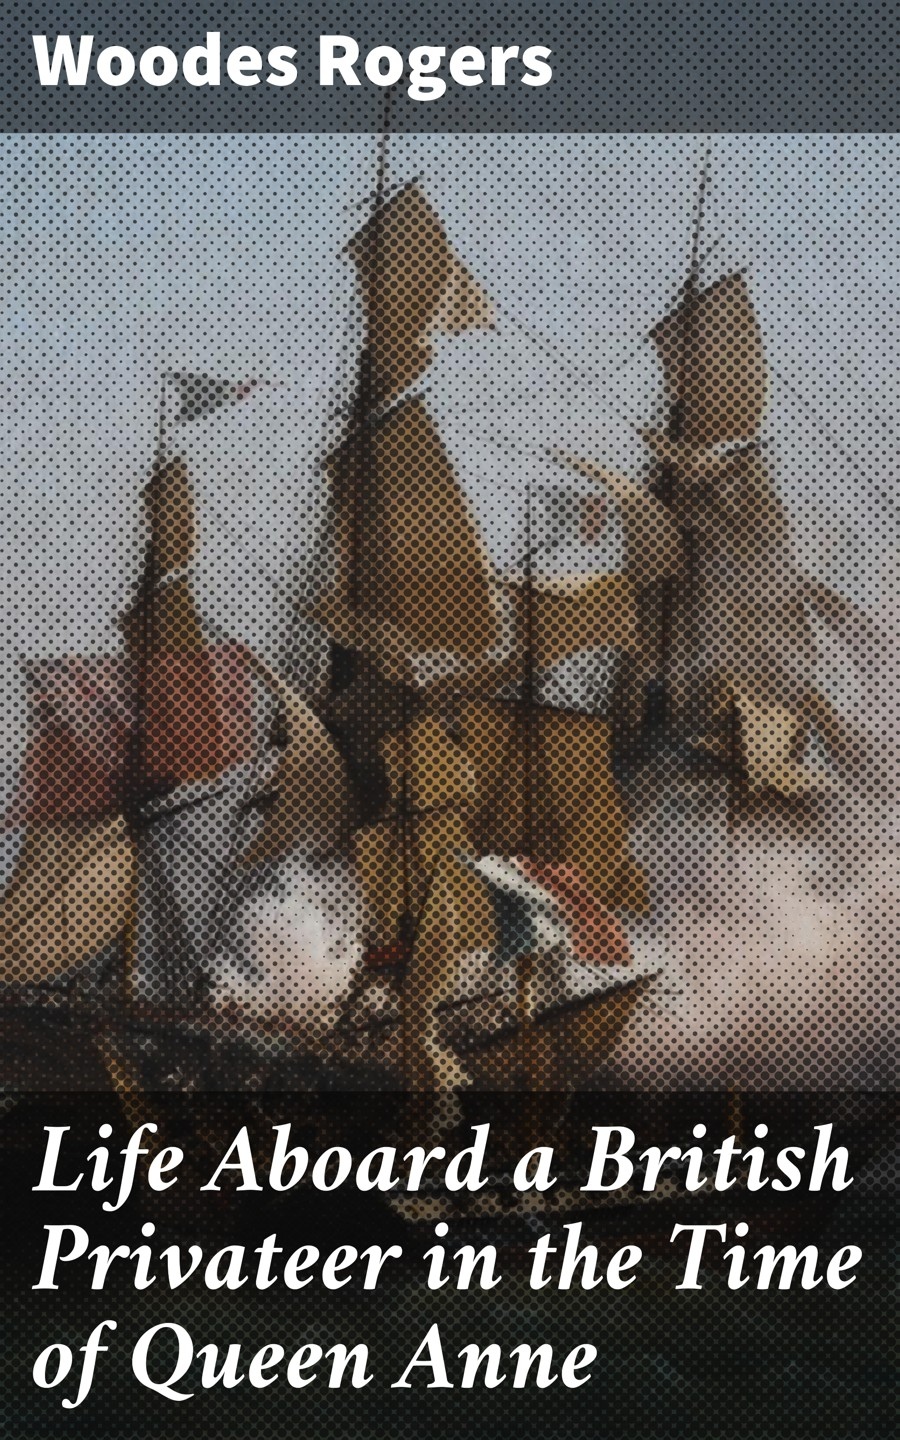 Life Aboard a British Privateer in the Time of Queen Anne